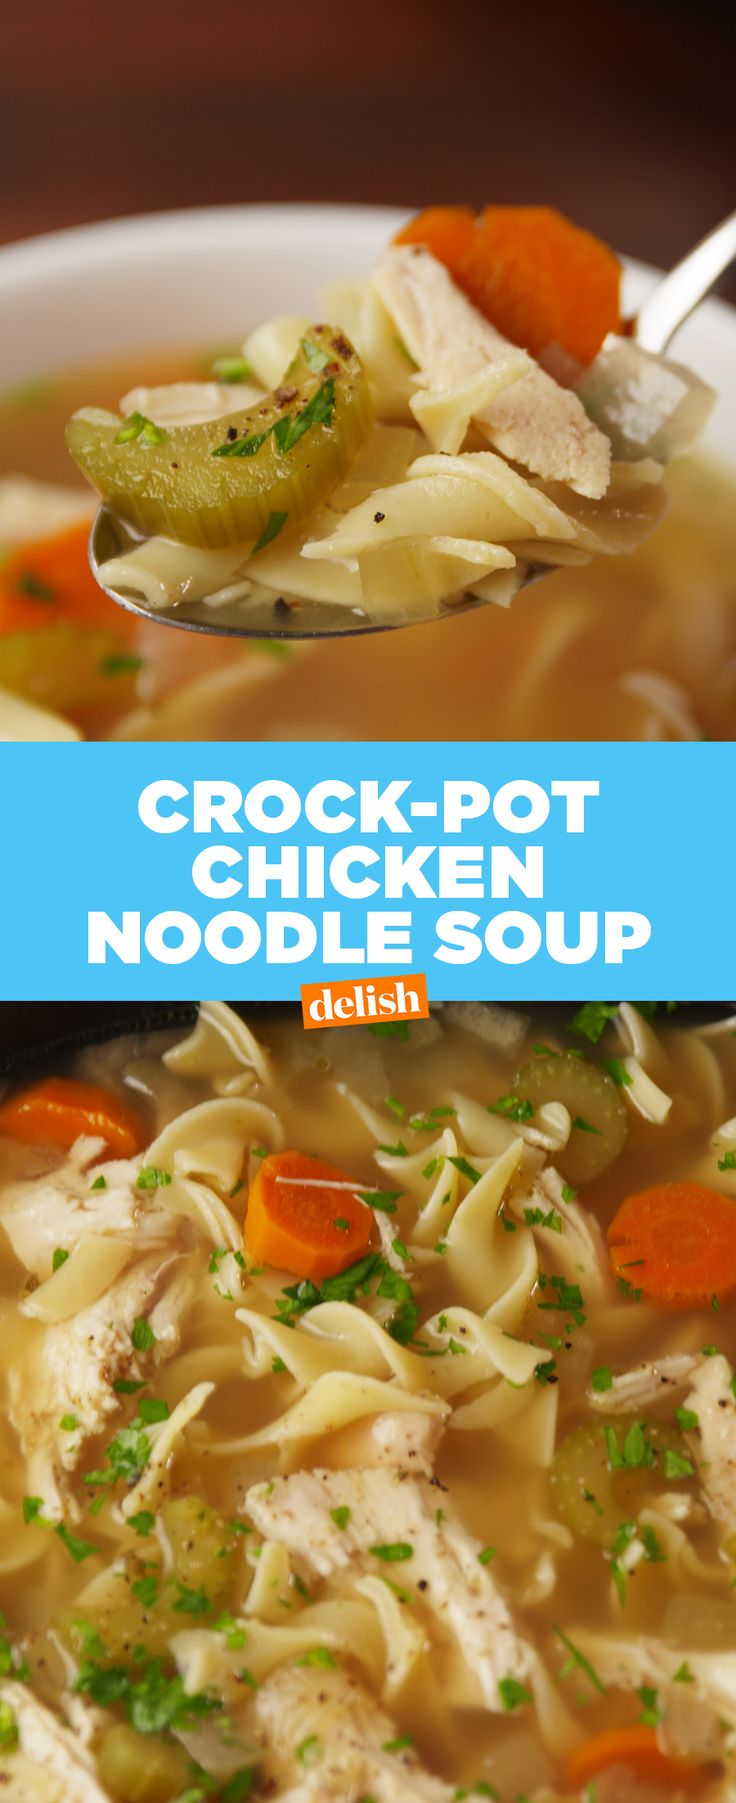 Crock-pot Chicken Noodle Soup is hands-down the easiest way to make this classic. Get the recipe at Delish.com.